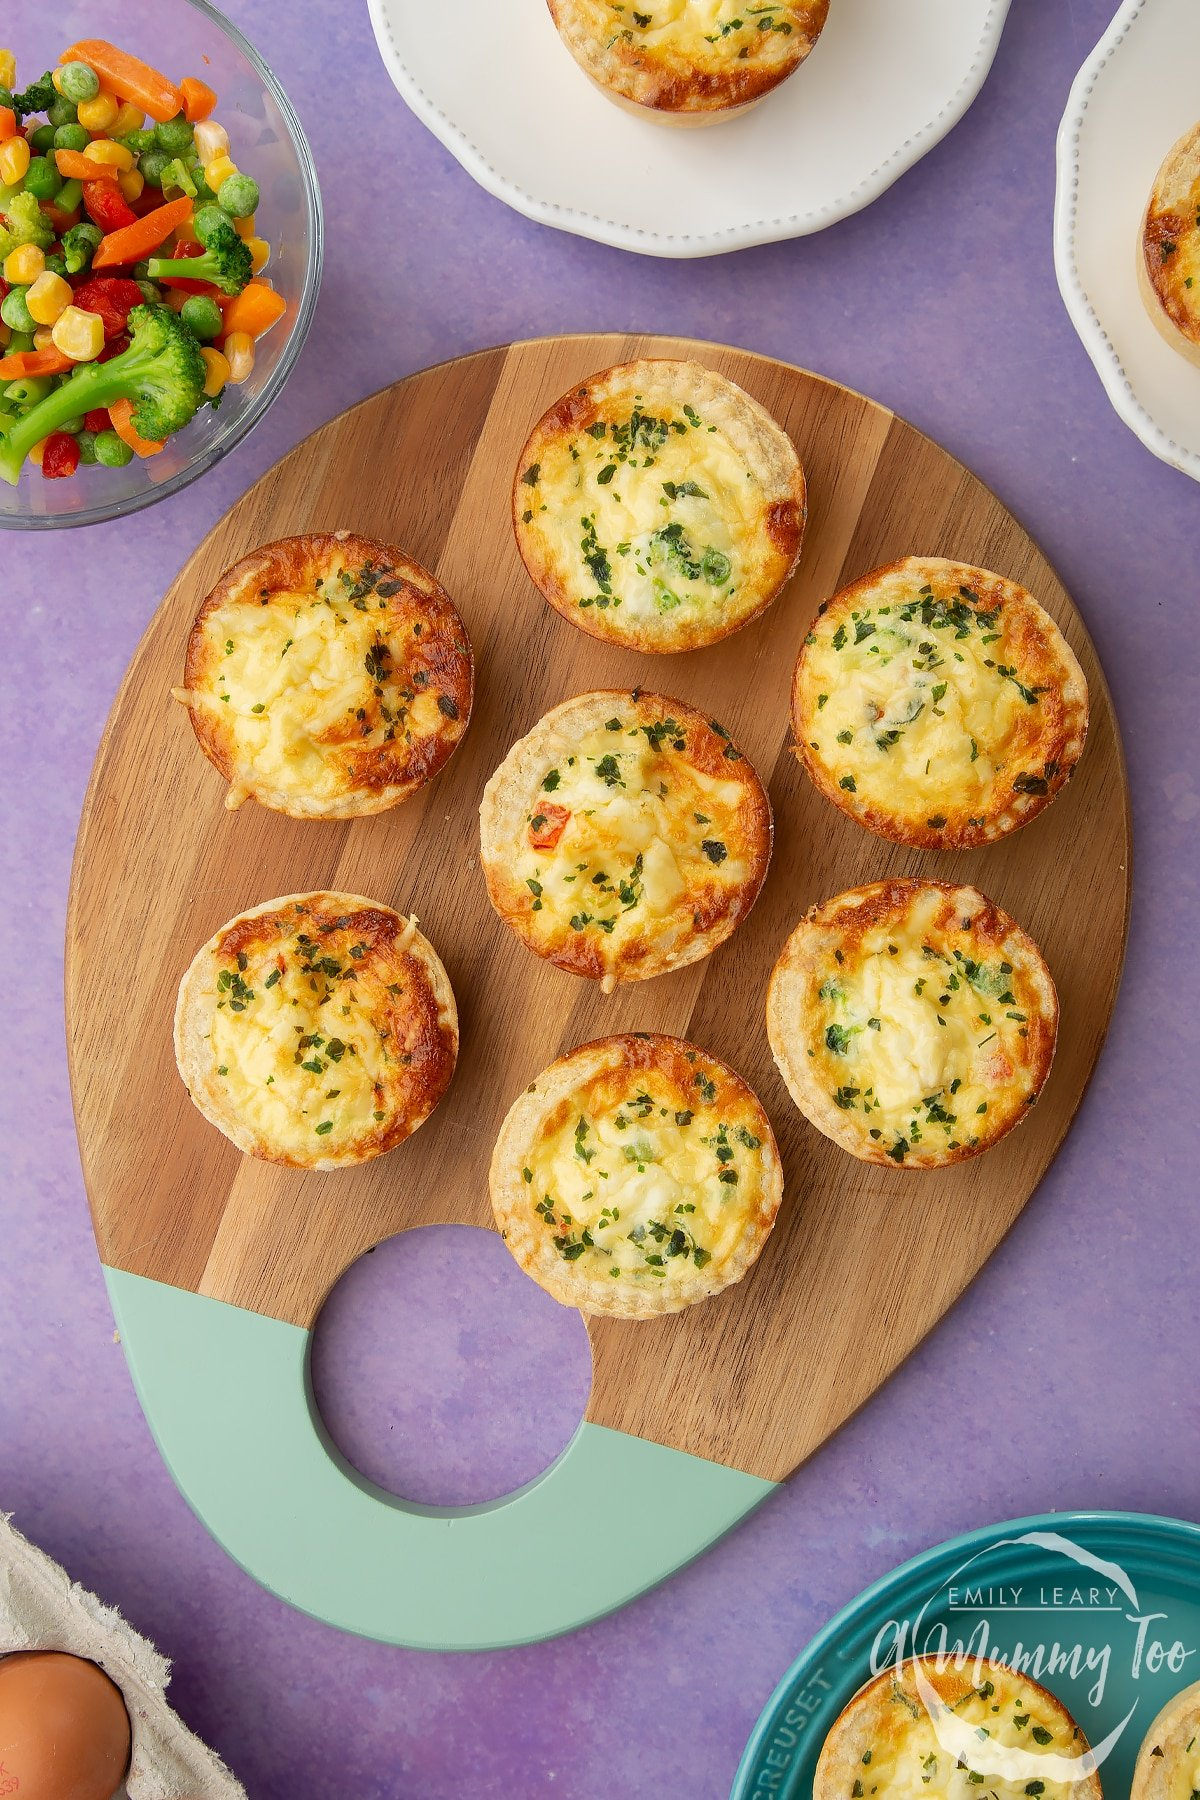 Mini vegetable quiches arranged on a wooden board.